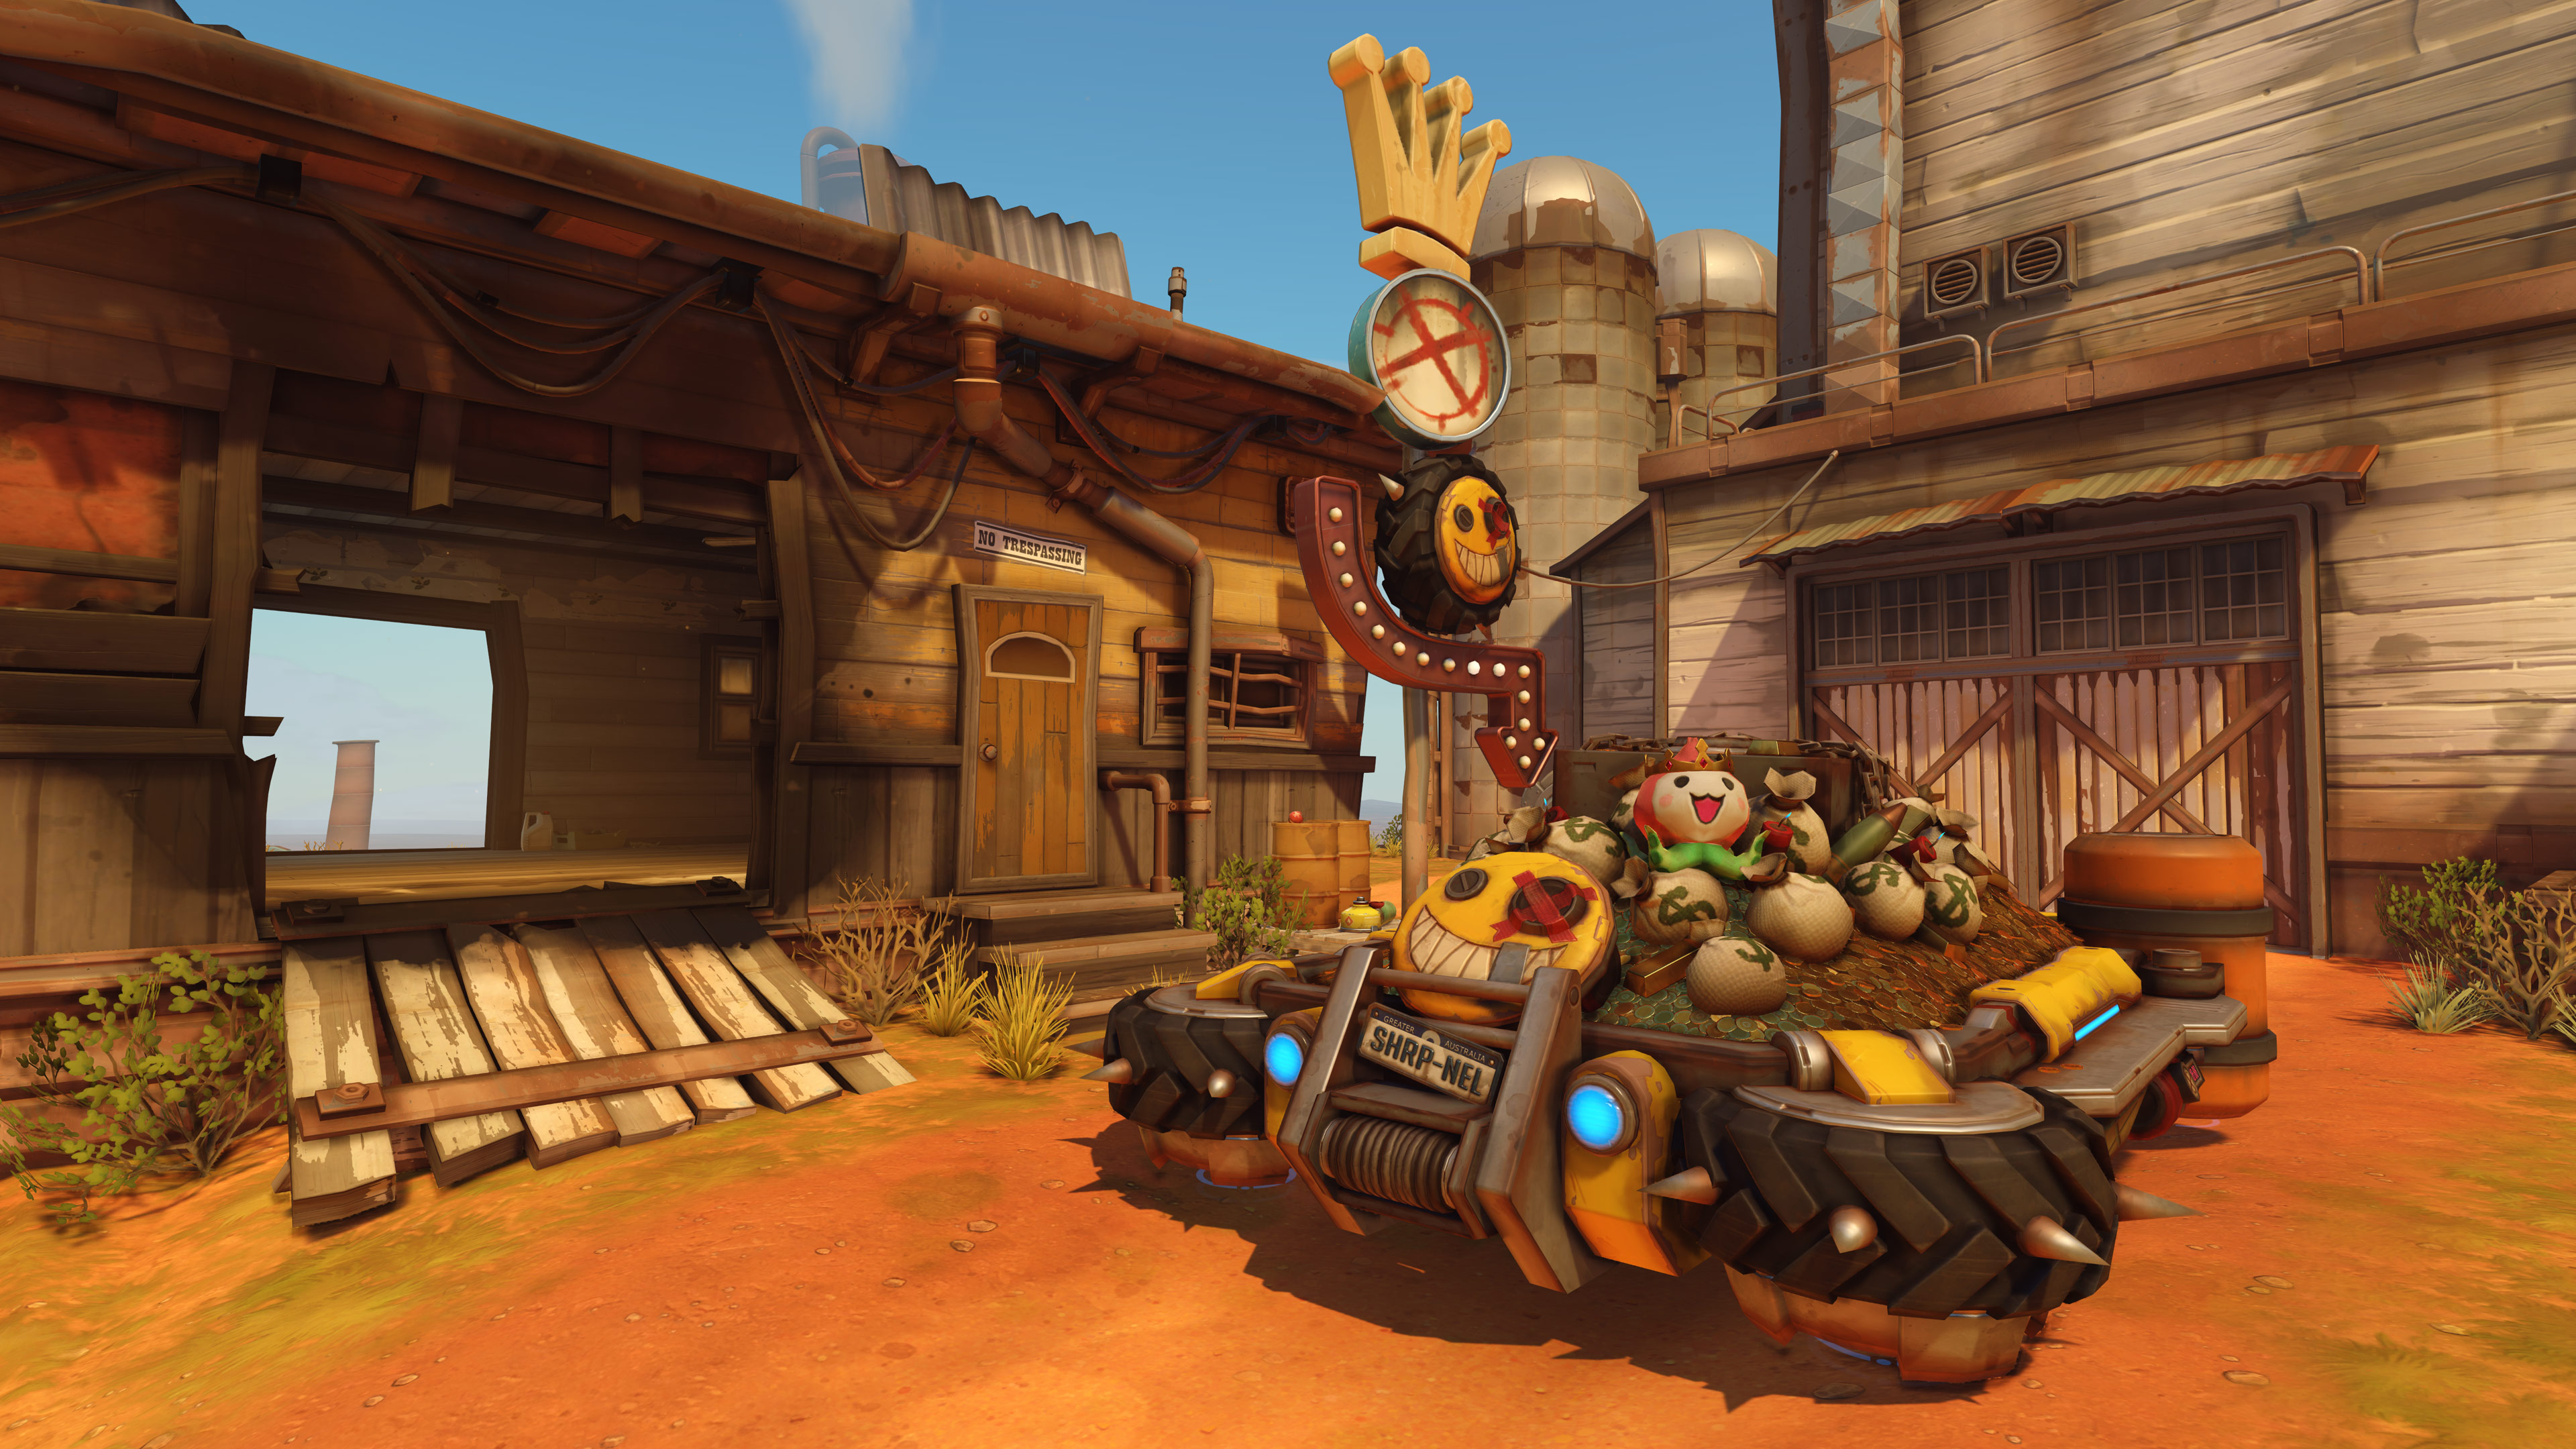 New Overwatch Map, Junkertown Announced